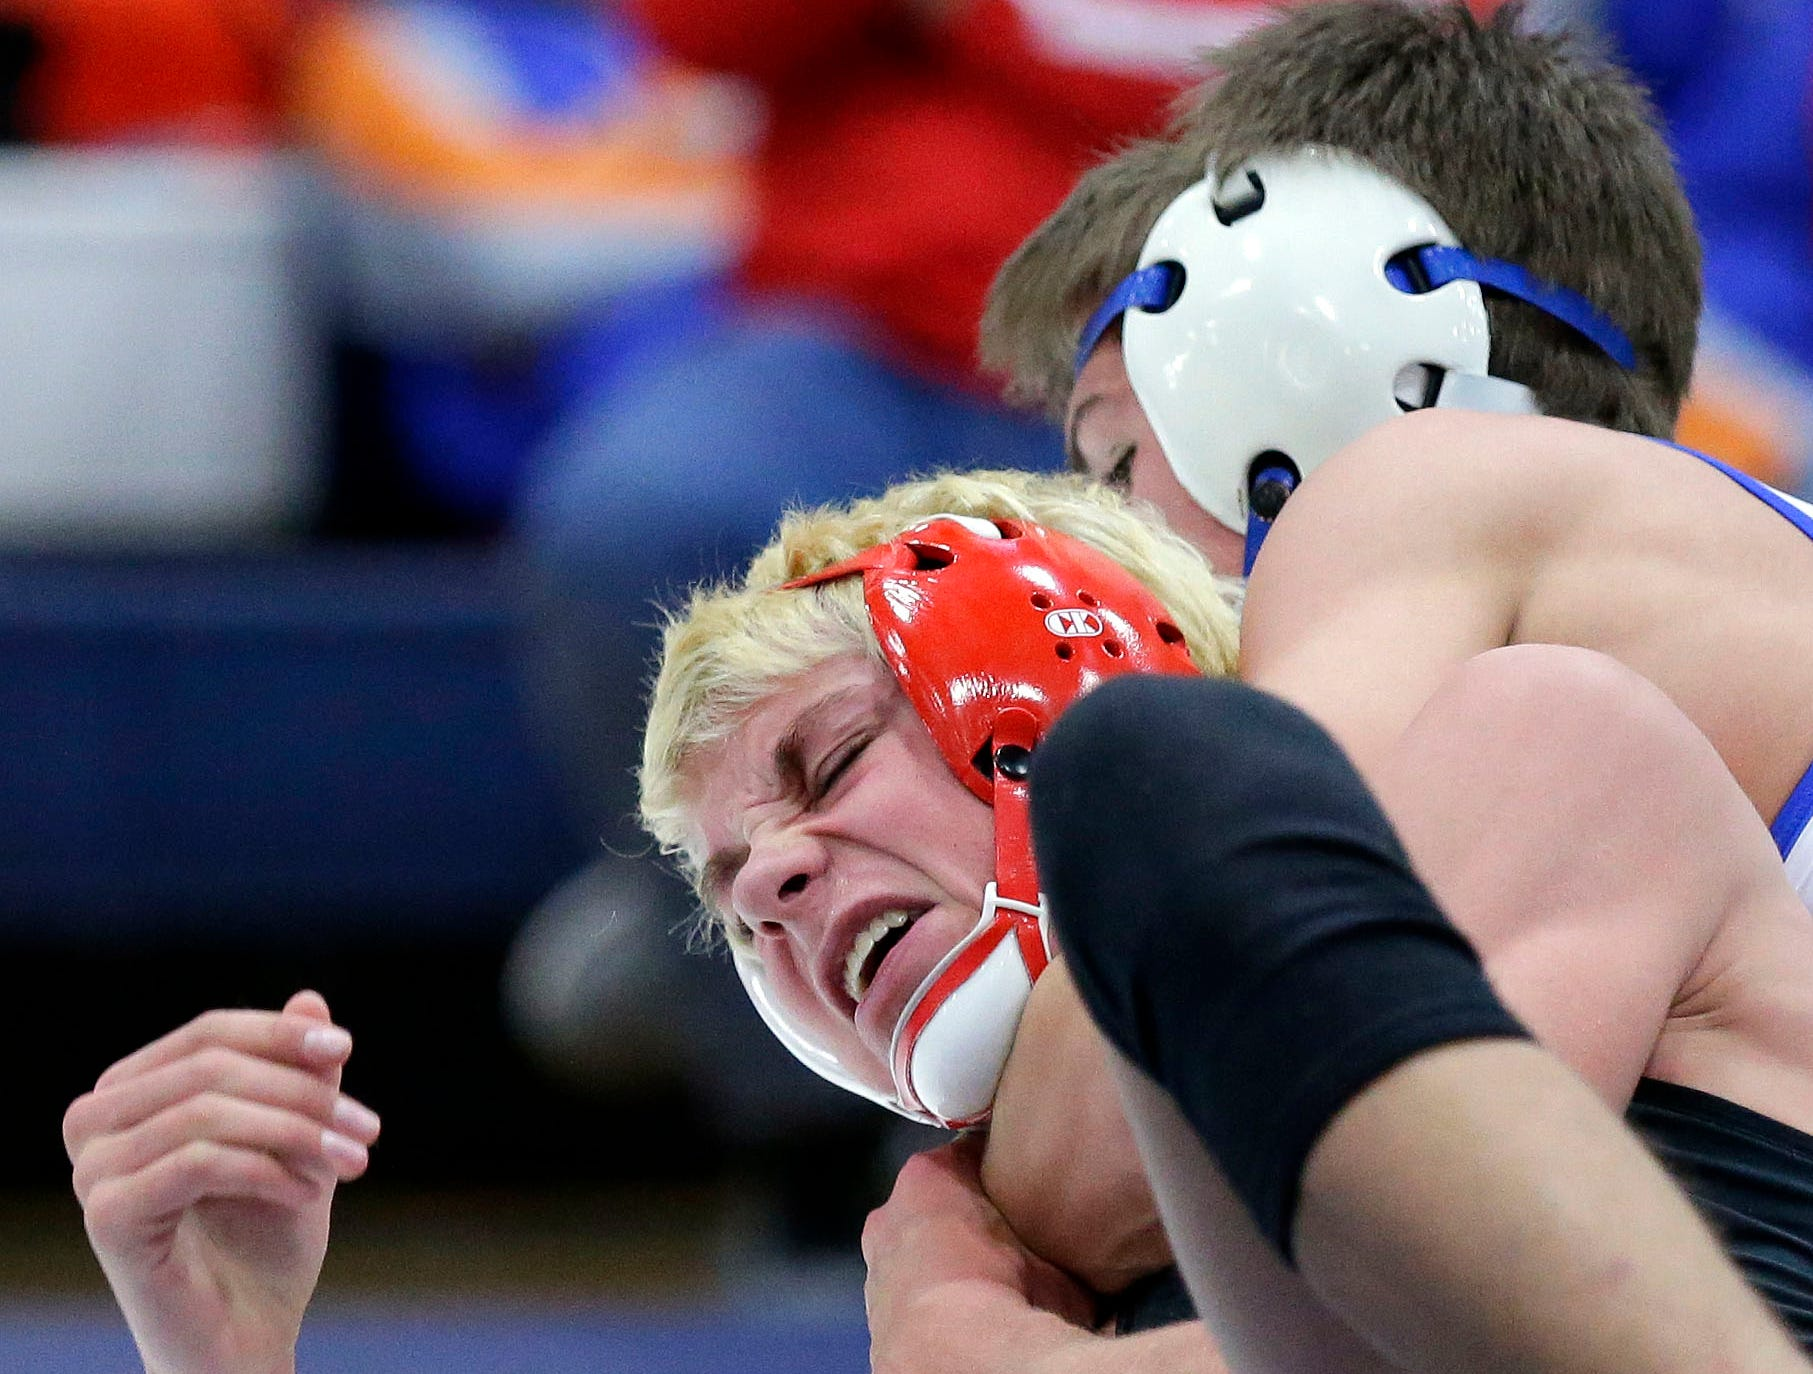 Sean Rietz of Wrightstown (right) wrestles Mason Marquette of Weyauwega-Fremont in the 132 weight class during the Sgt. Nick Mueller Memorial Wrestling Tournament Saturday, December 1, 2018, at Little Chute High School in Little Chute, Wis.